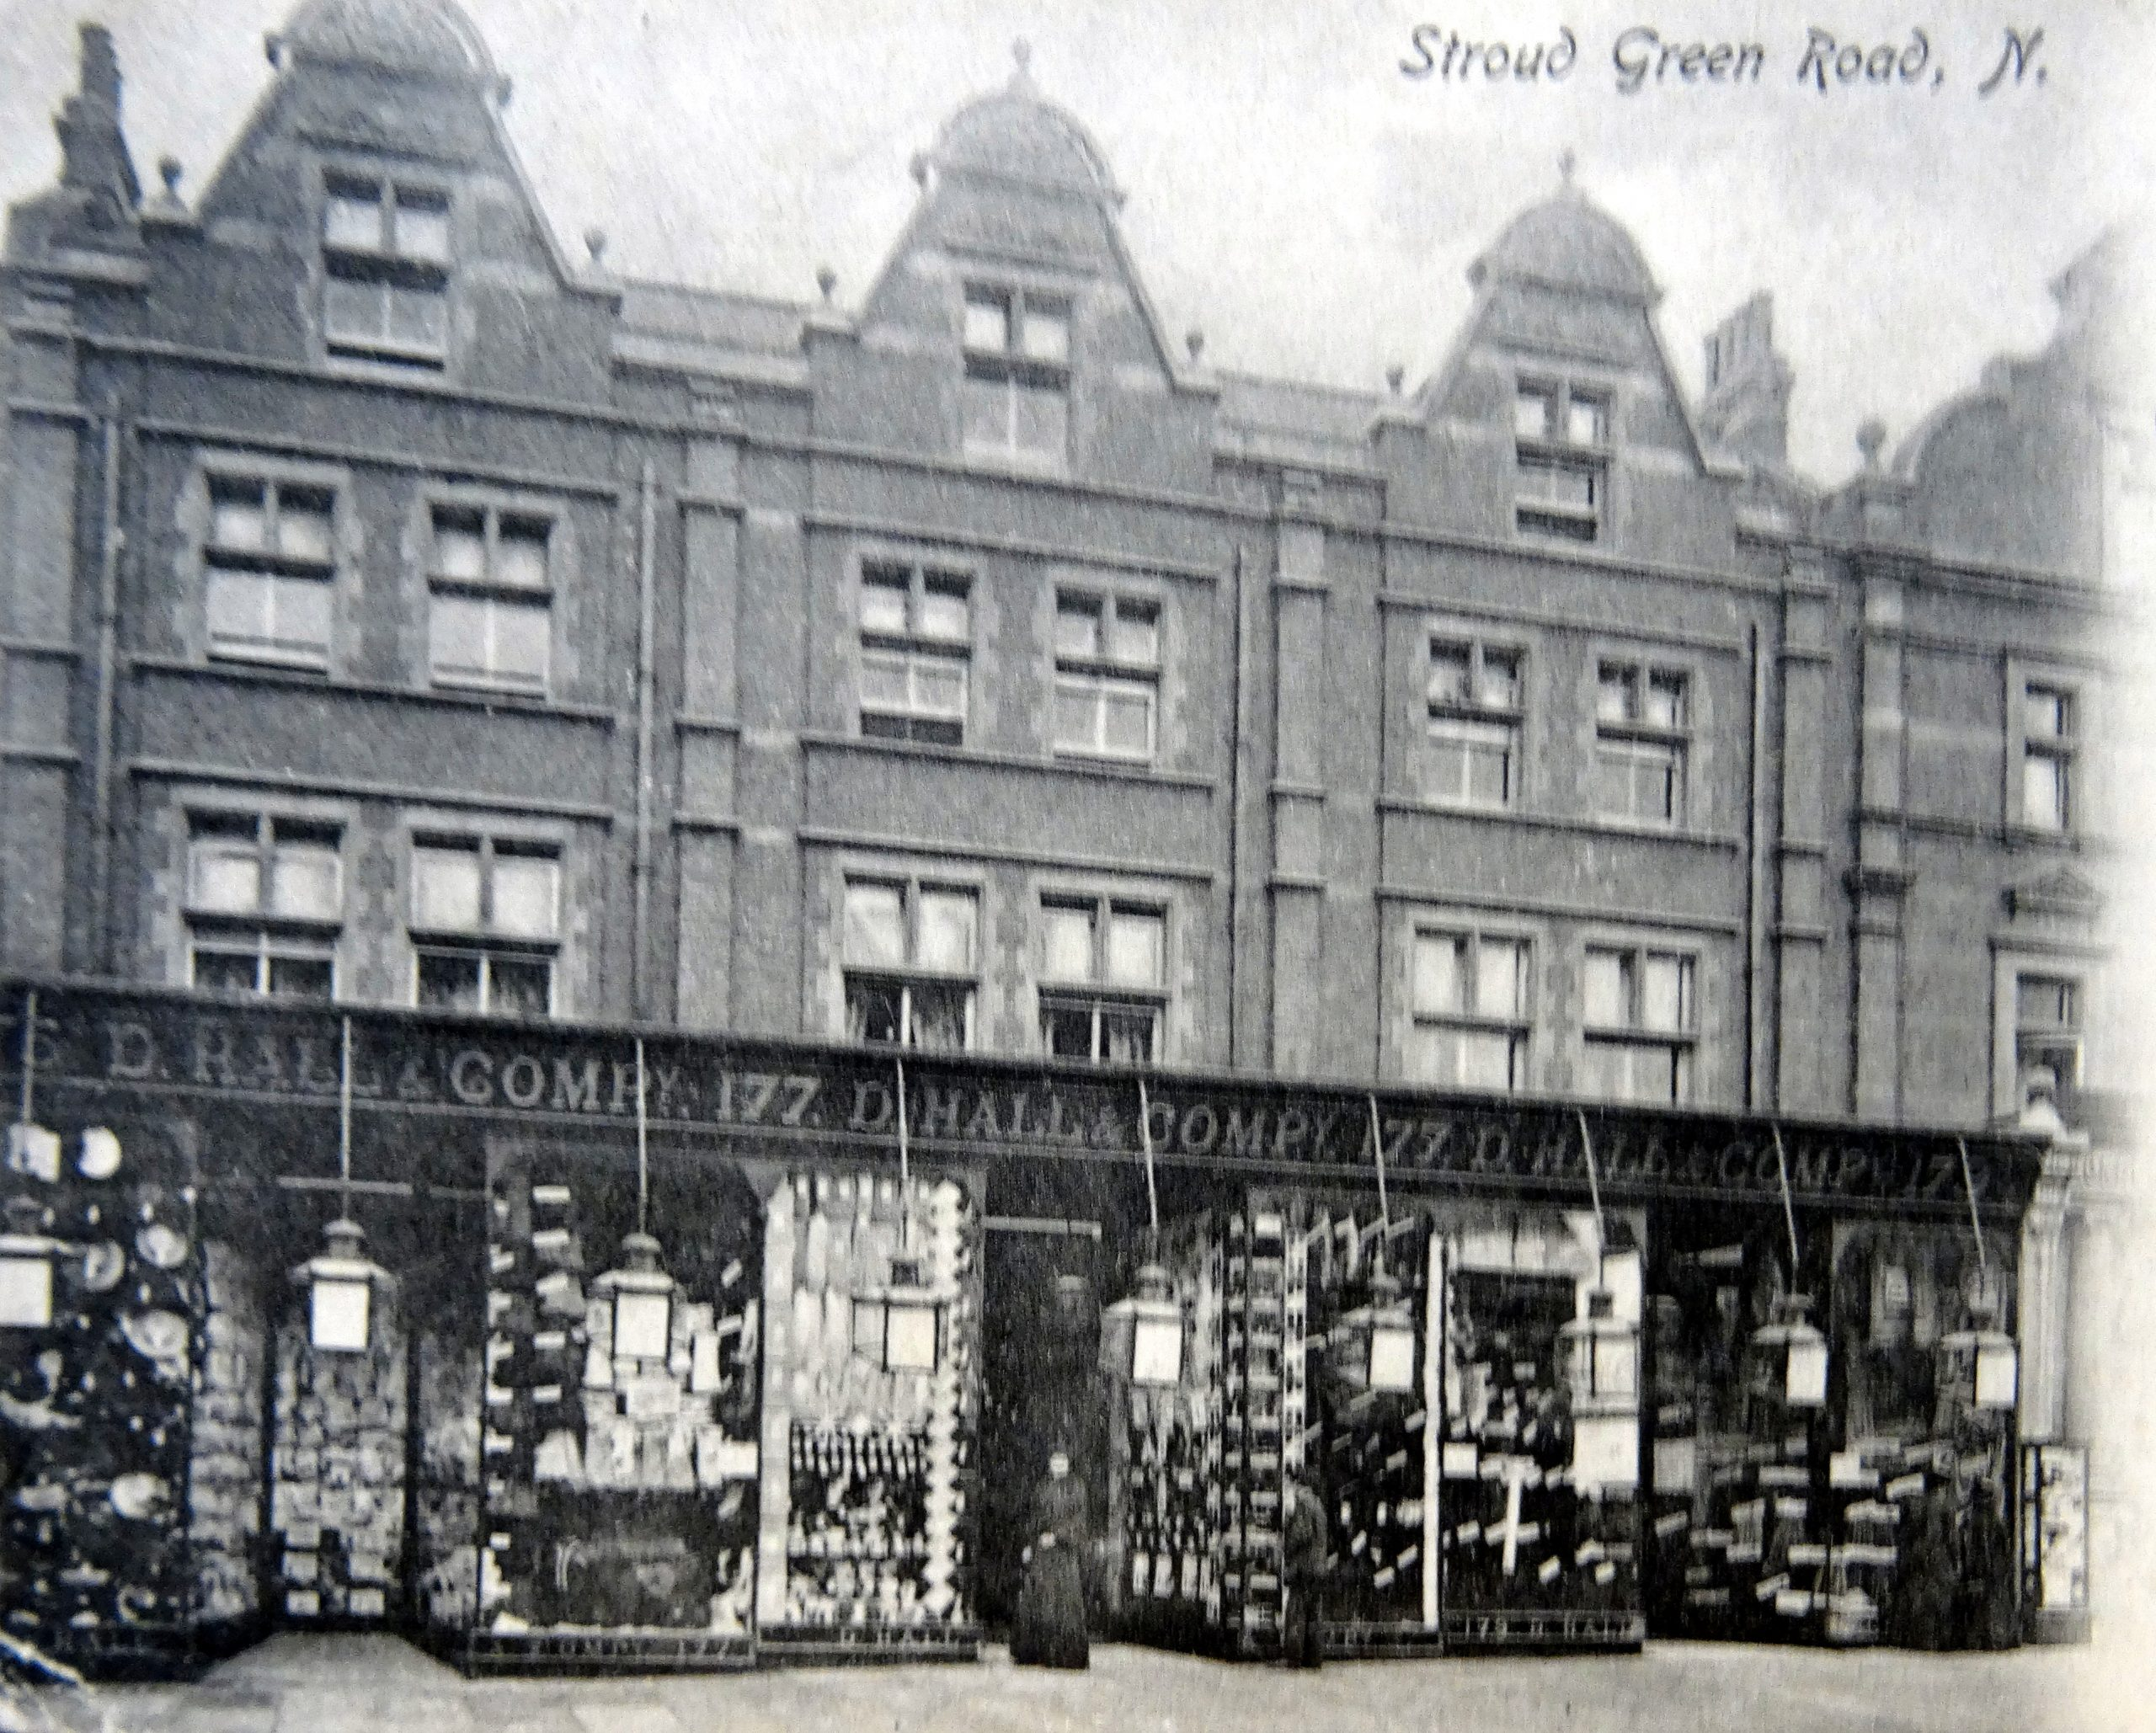 D. Hall & Company, Stroud Green Road. Islington Local History Centre